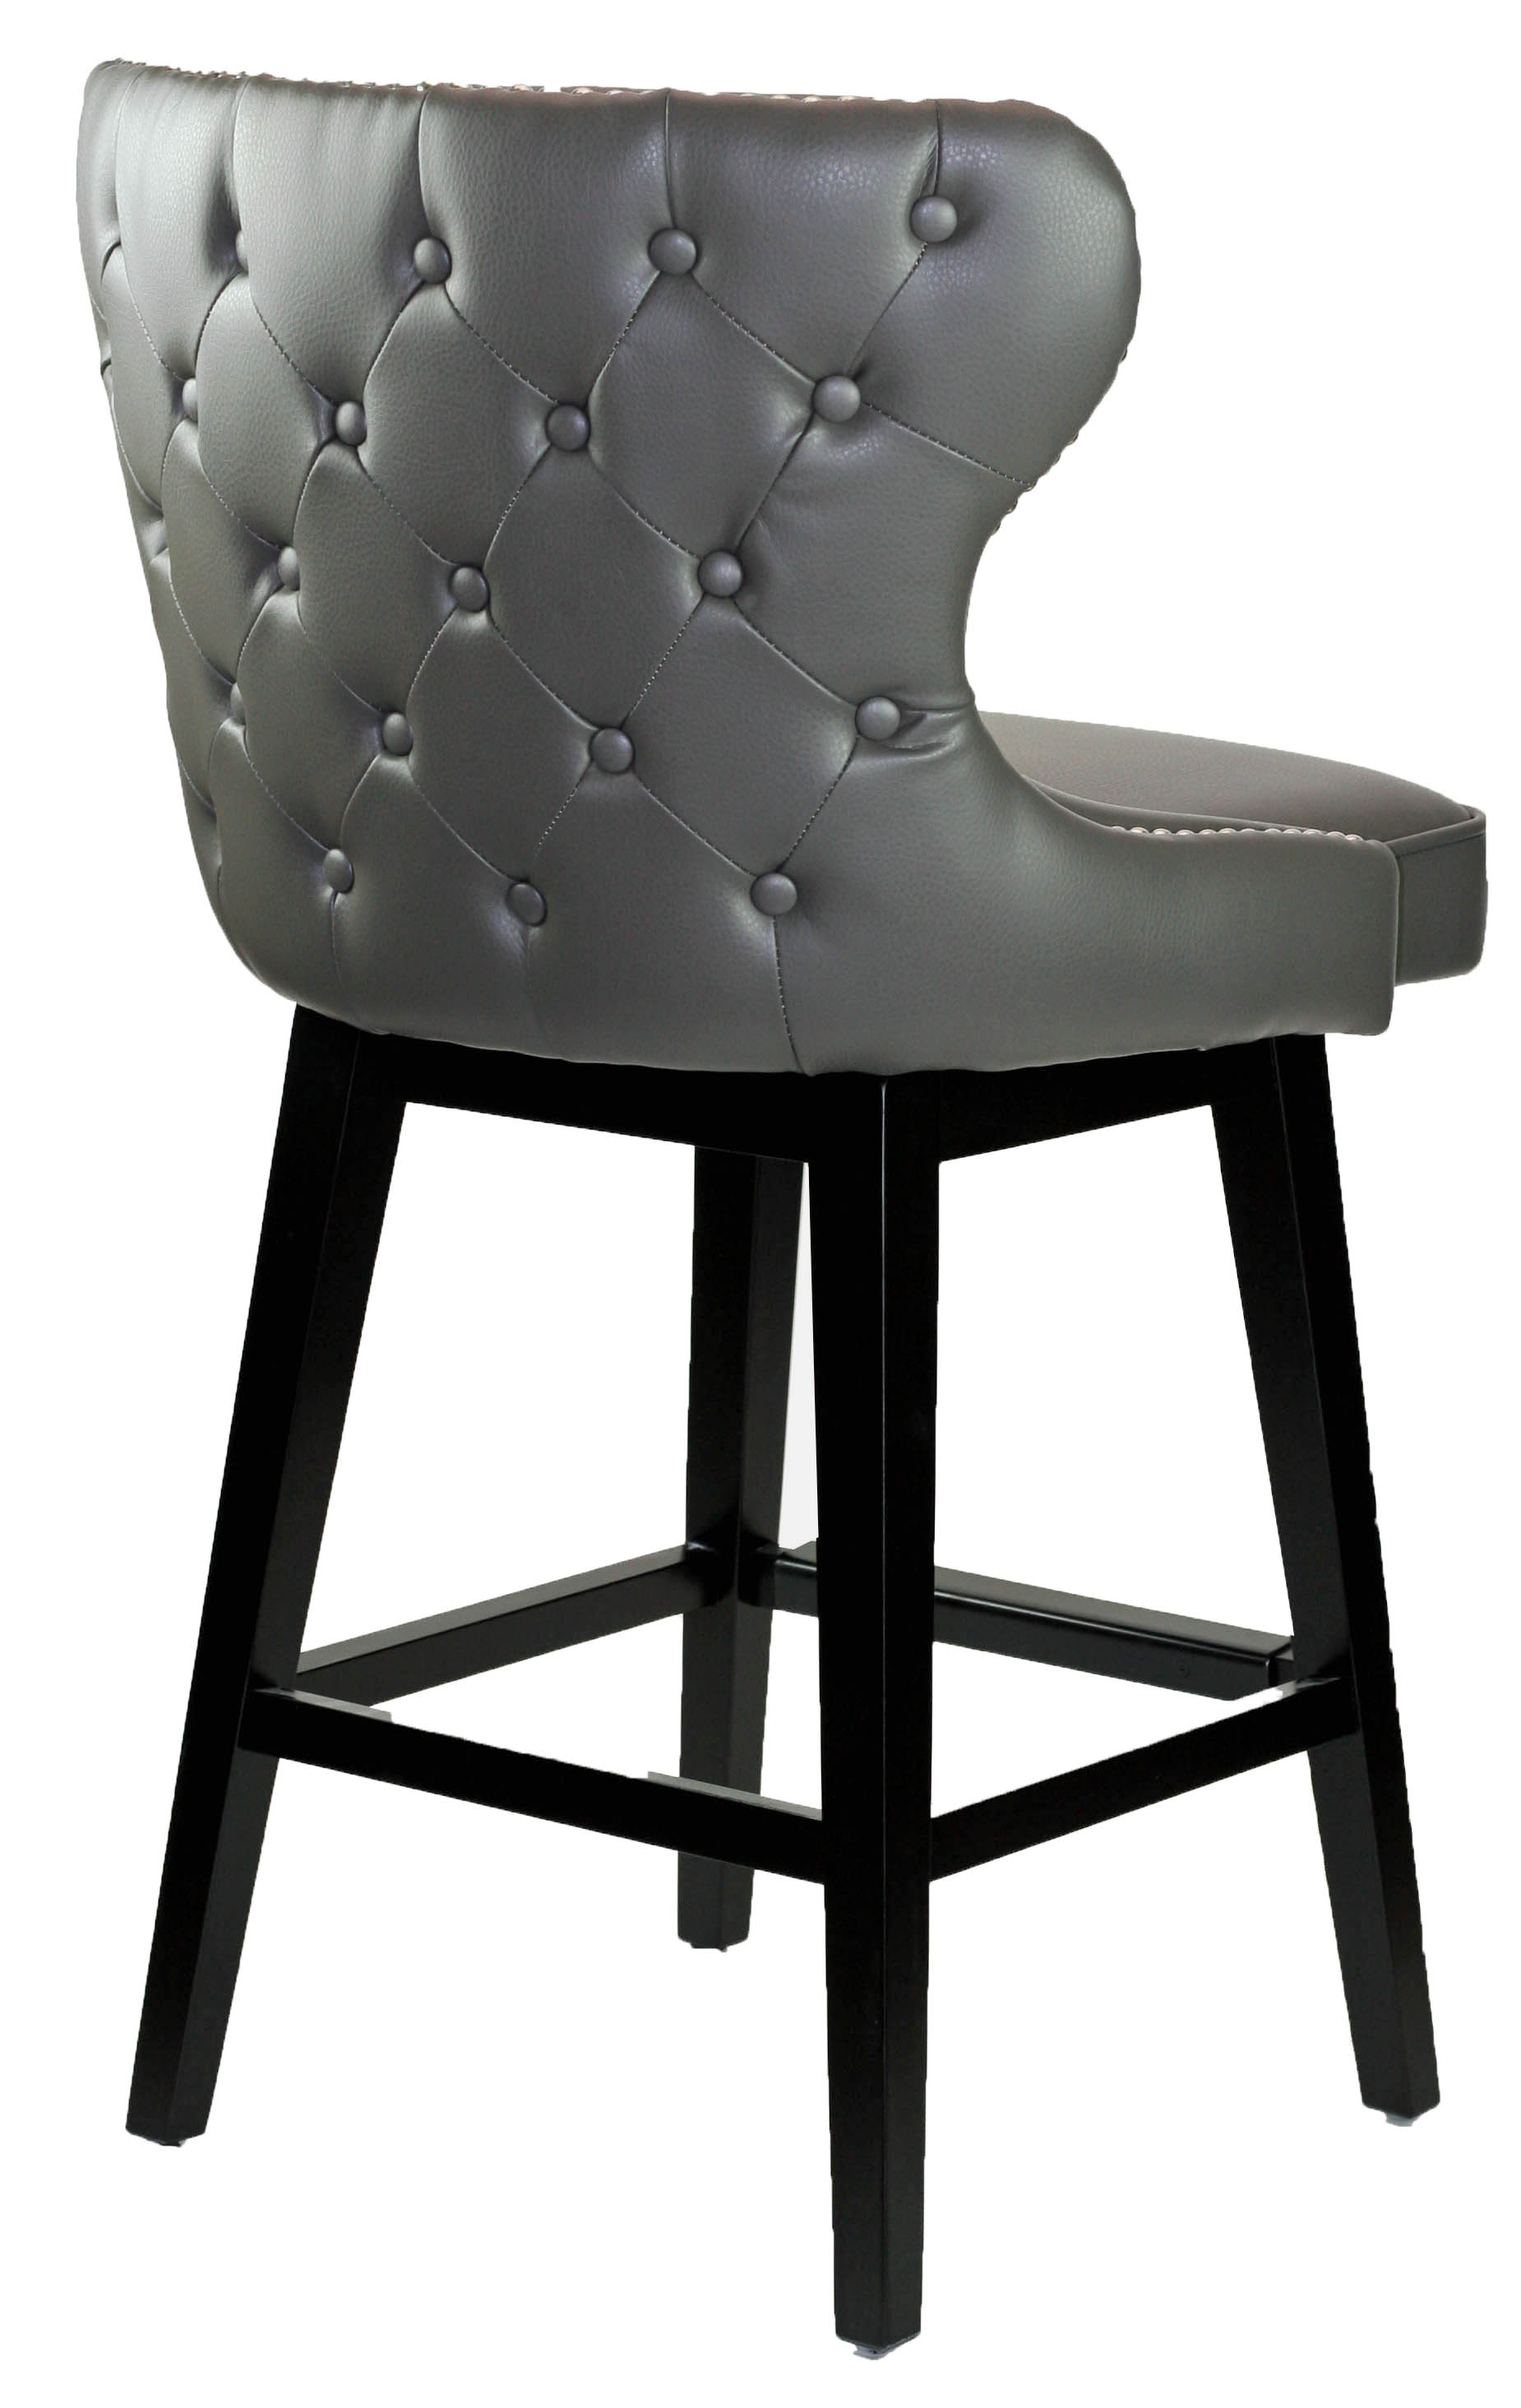 Grey Leather Swivel Counter Stool With Chrome Nailheads